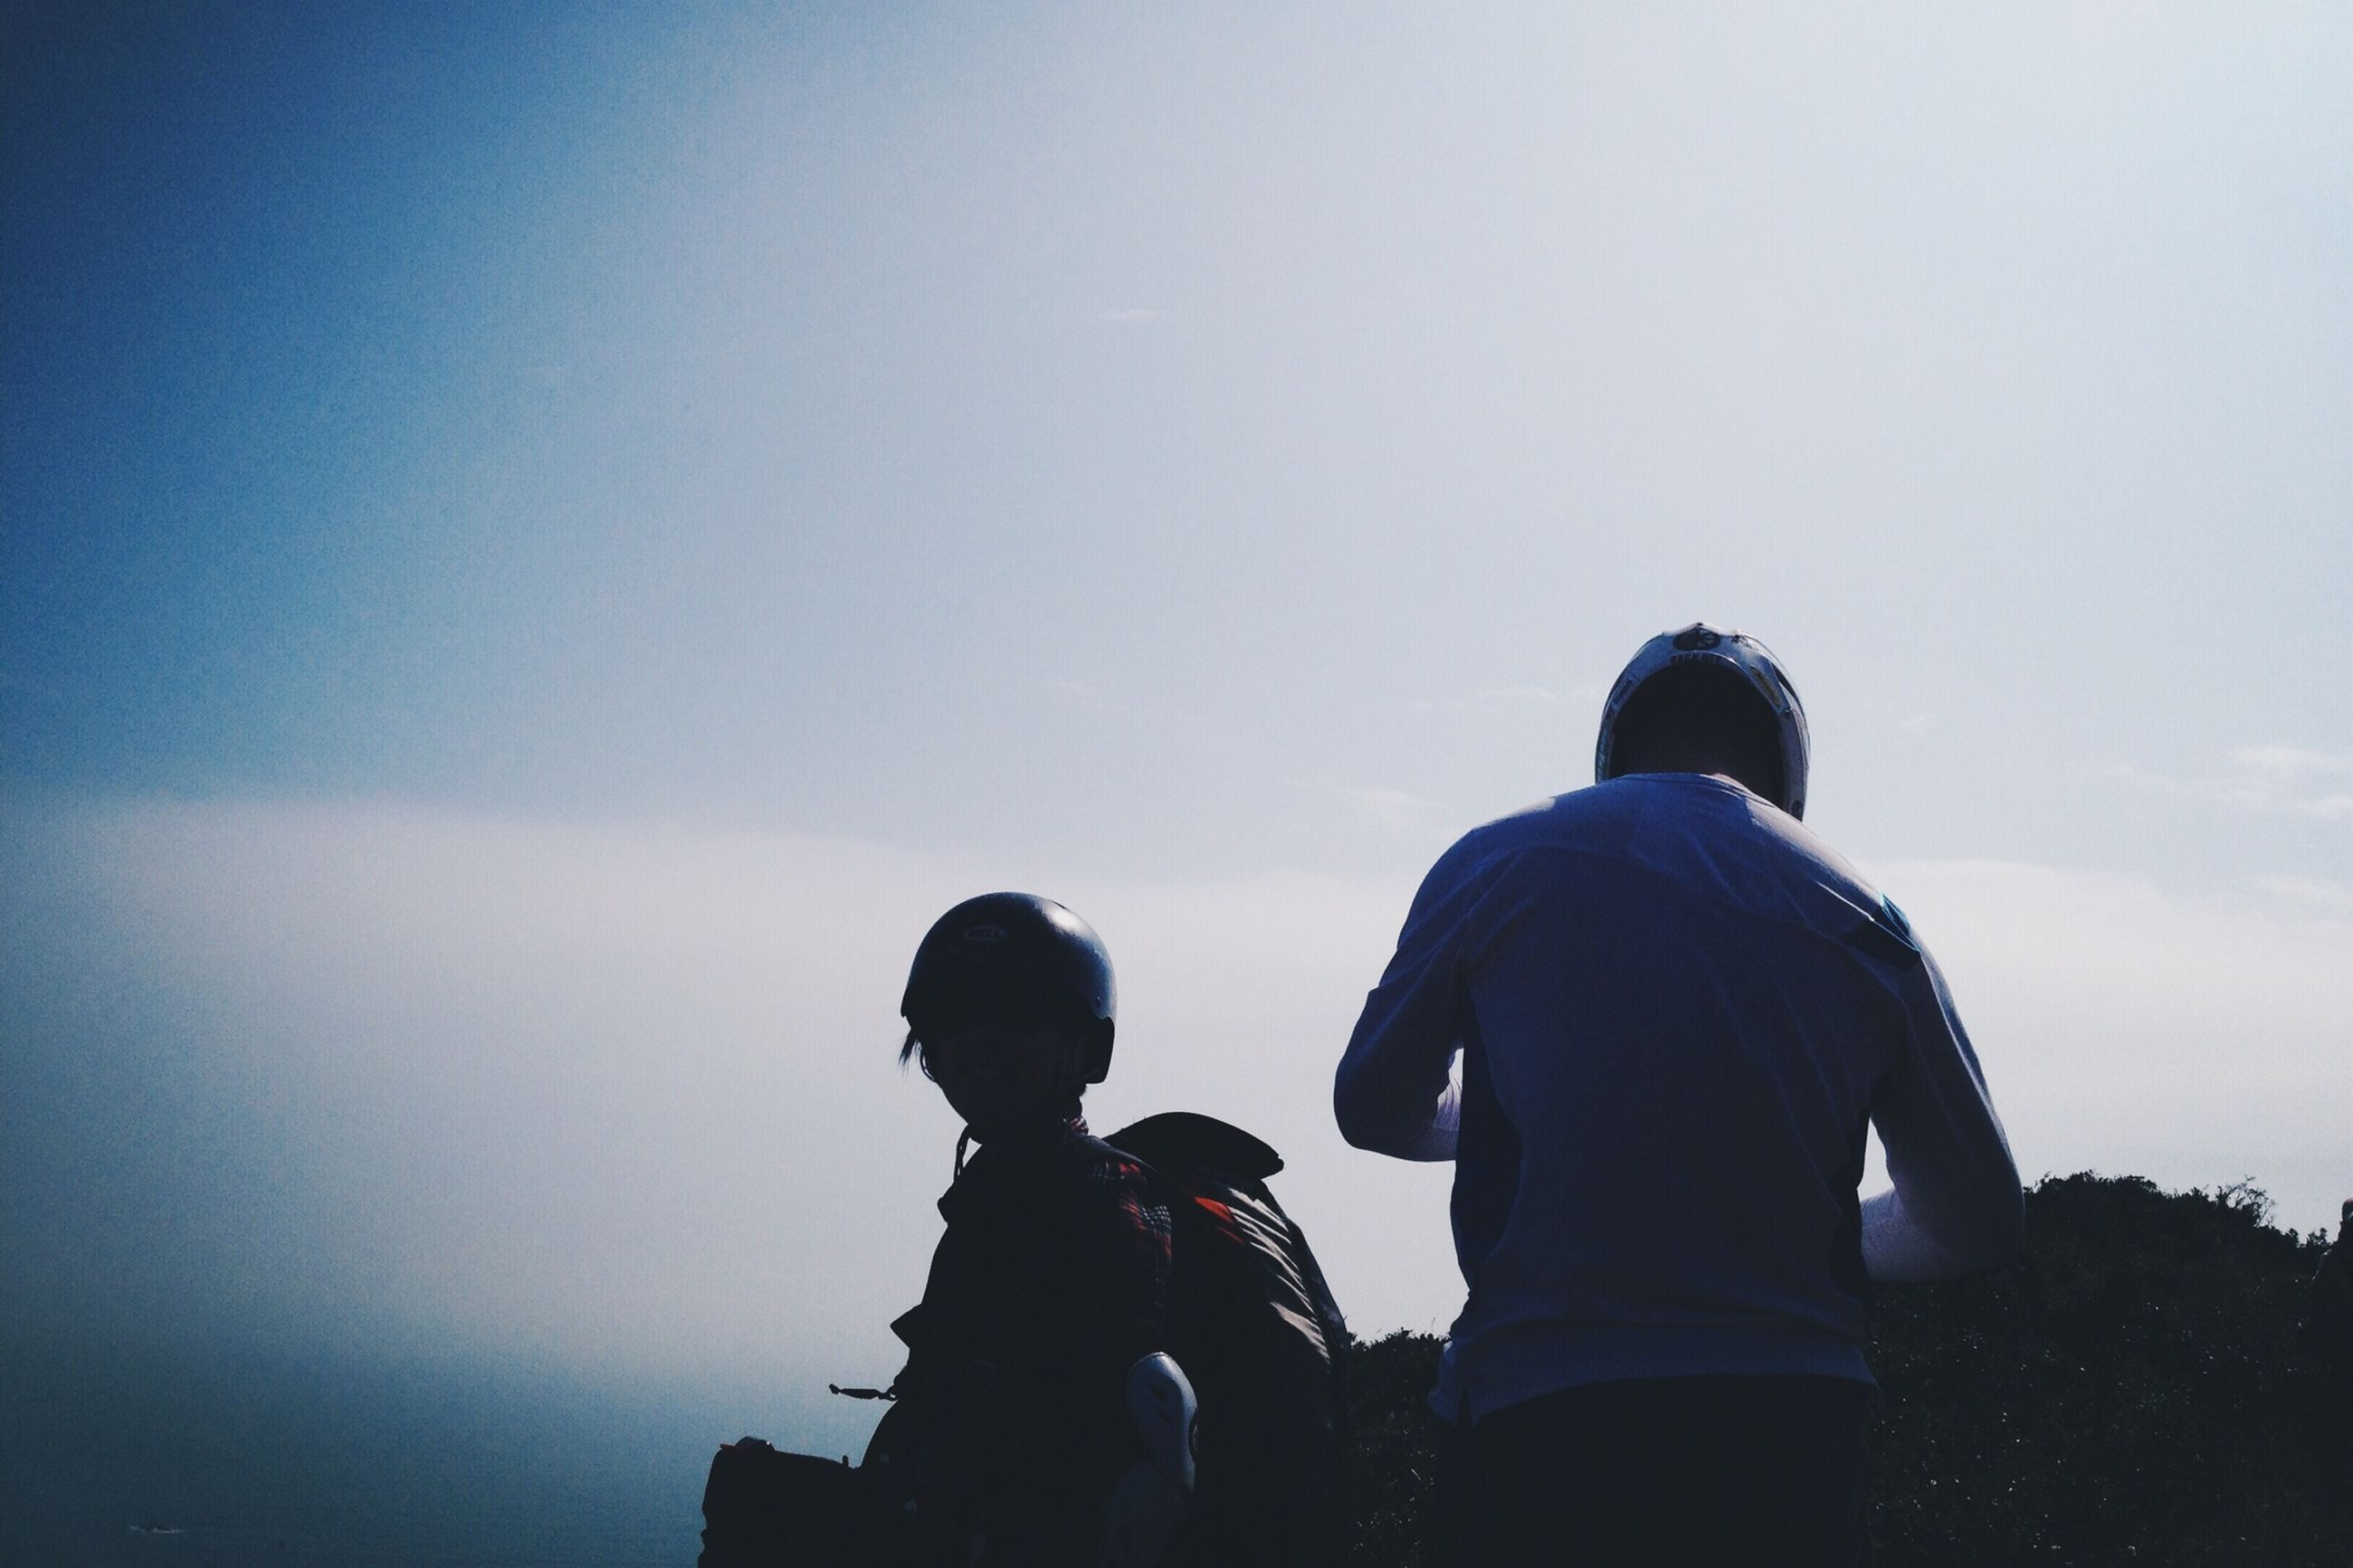 lifestyles, men, leisure activity, togetherness, copy space, clear sky, silhouette, rear view, bonding, person, standing, friendship, sitting, sky, love, photographing, couple - relationship